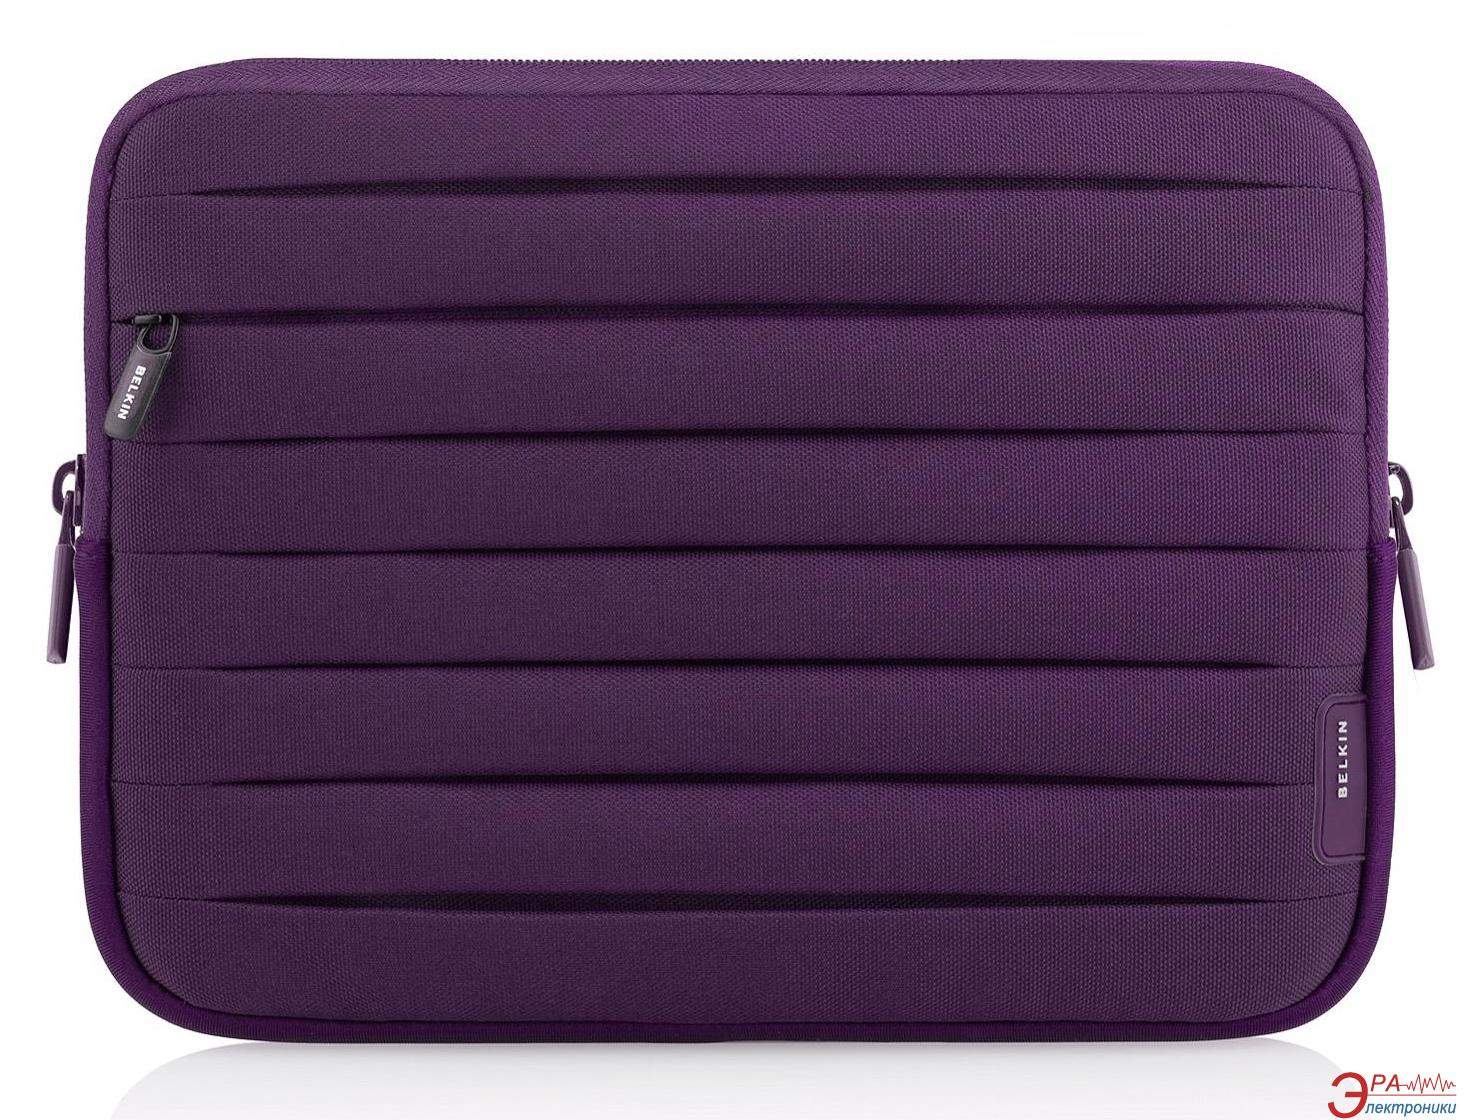 Чехол для ноутбука Belkin Pleated Sleeve for MacBook Violet (F8N372cw128)